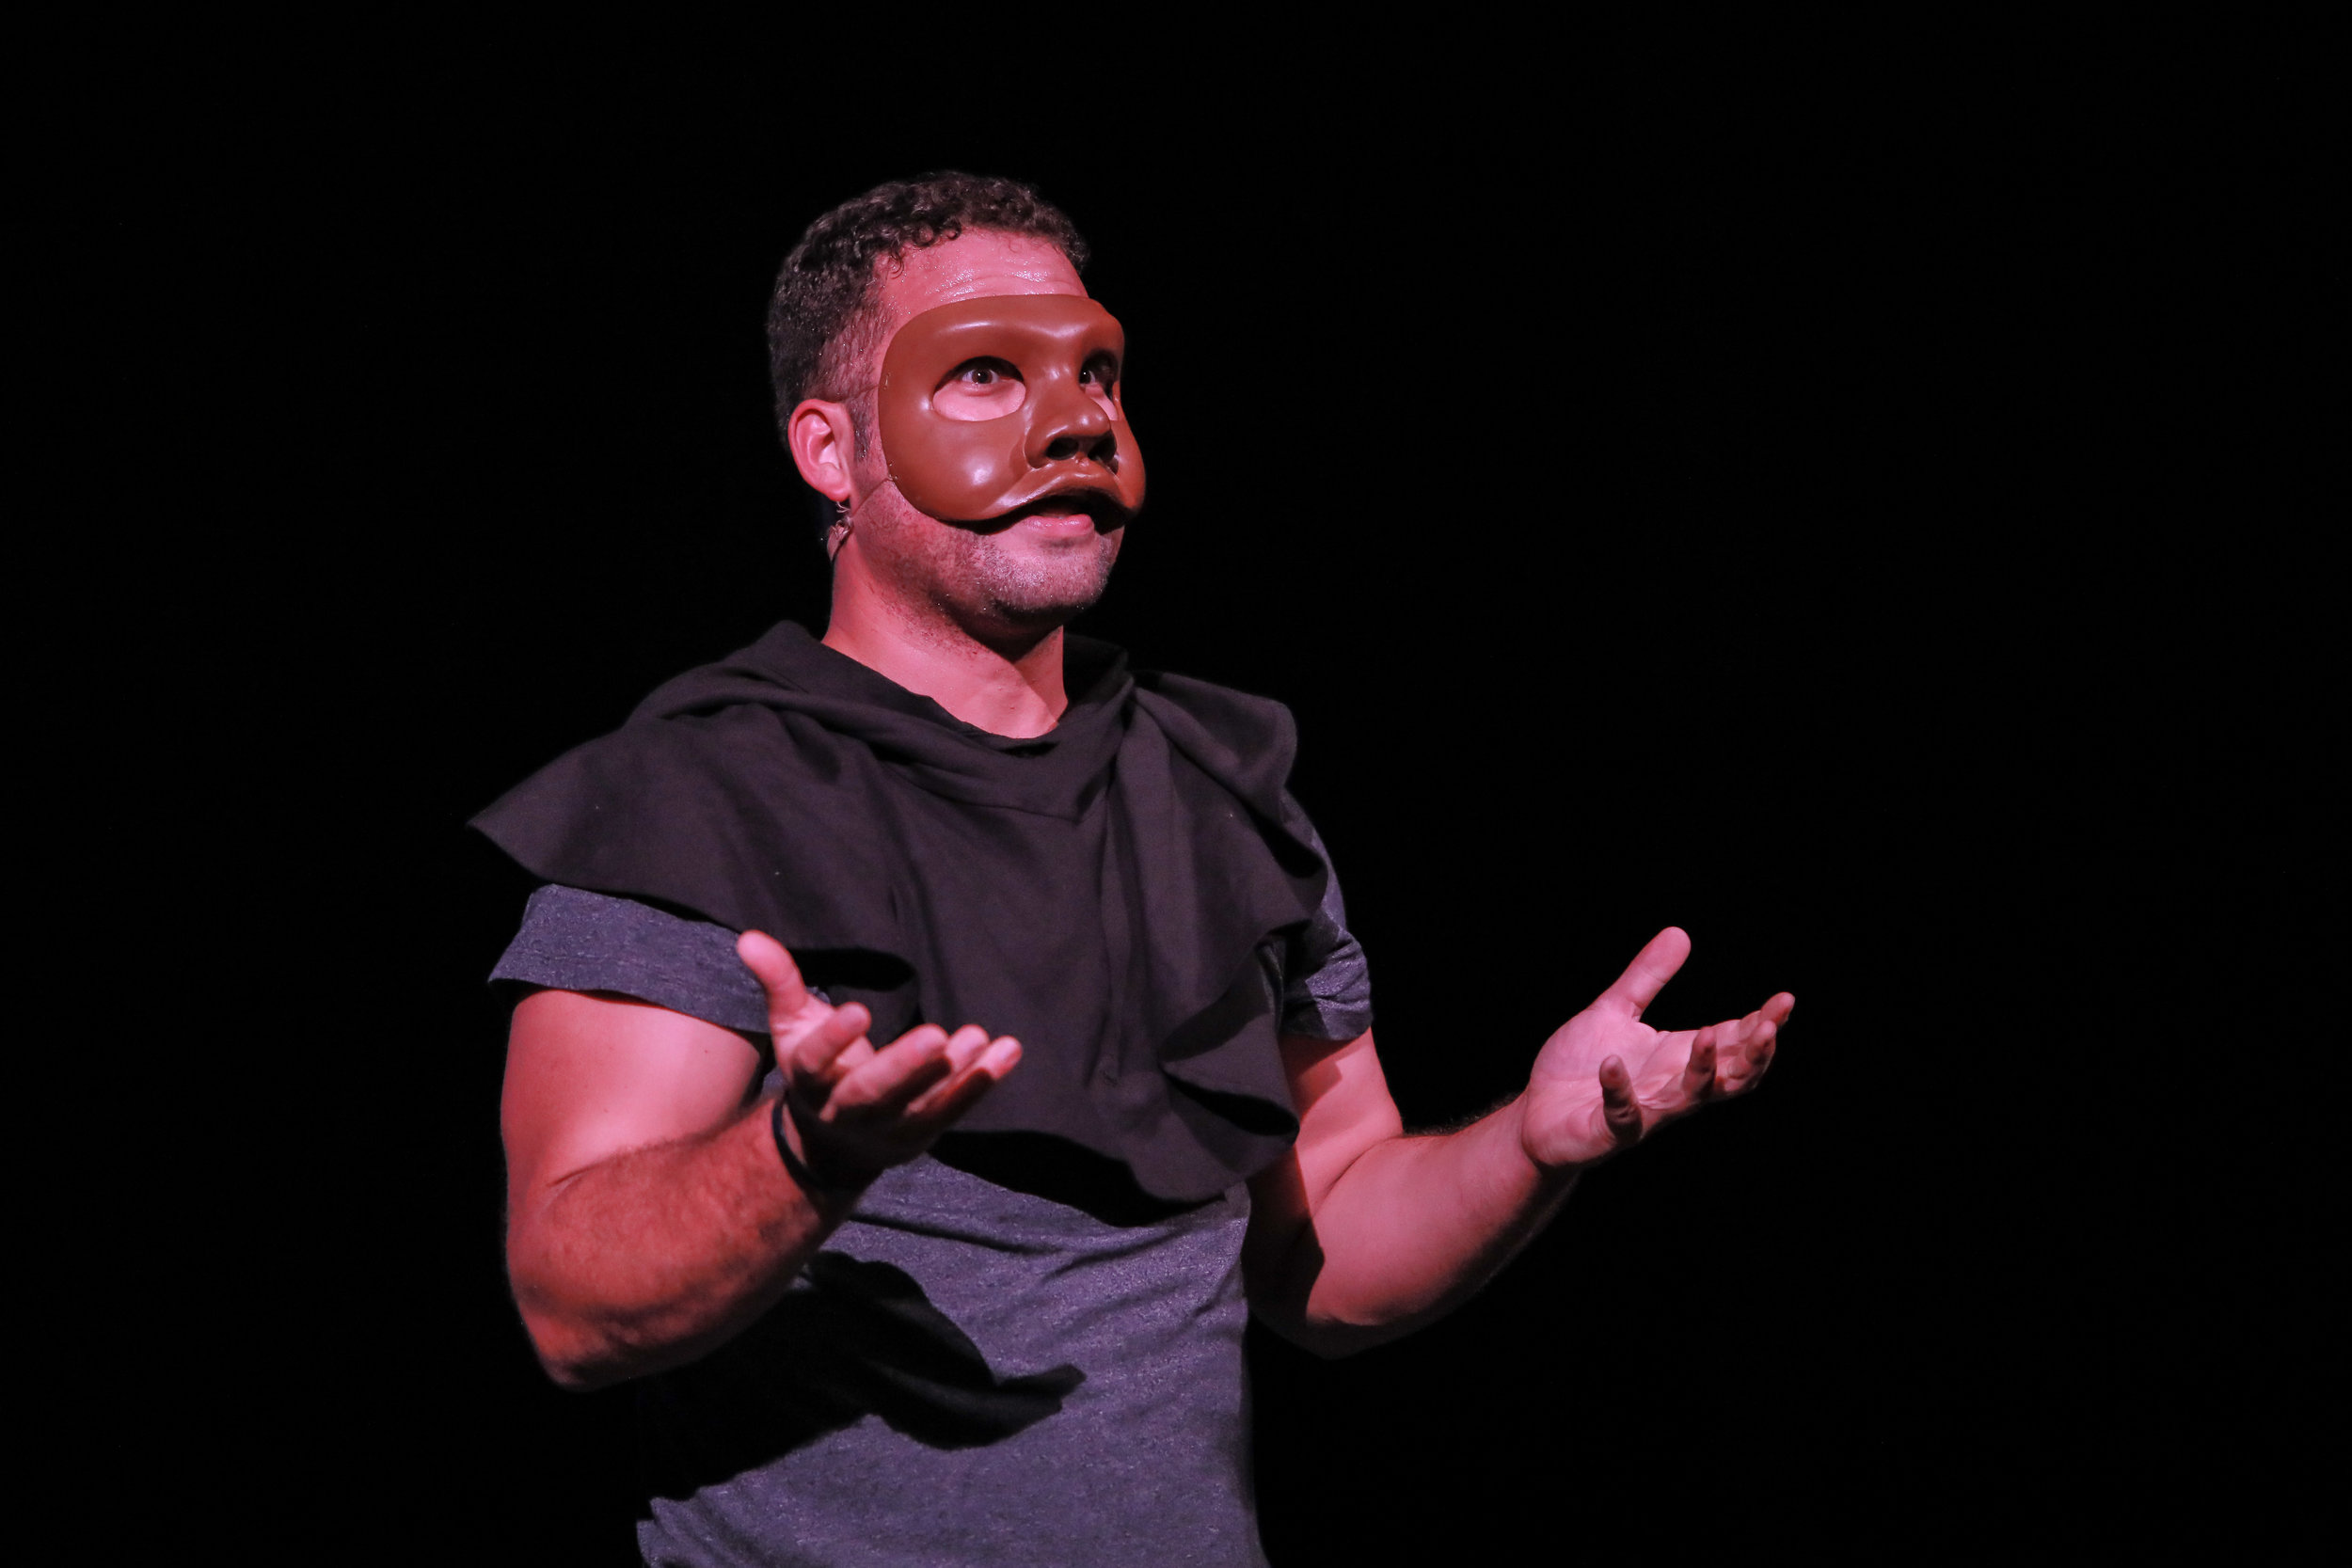 CARLOSALEXSIS CRUZ - Carlos is a physical theatre actor/creator with an immense desire of using theatre to provoke questioning within those who witness. Originally from Puerto Rico, he is very proud of his heritage: a mix of cultures in itself a bit aggravated by the fact that we are a US colony. Since finding his way to theatre arts, he has a thirst of finding new ways of telling stories. That guided me towards the path of getting an MFA degree in Physical Theatre, with a main focus on the convergence of circus and theatre, and a specialty in mask theatre performance.